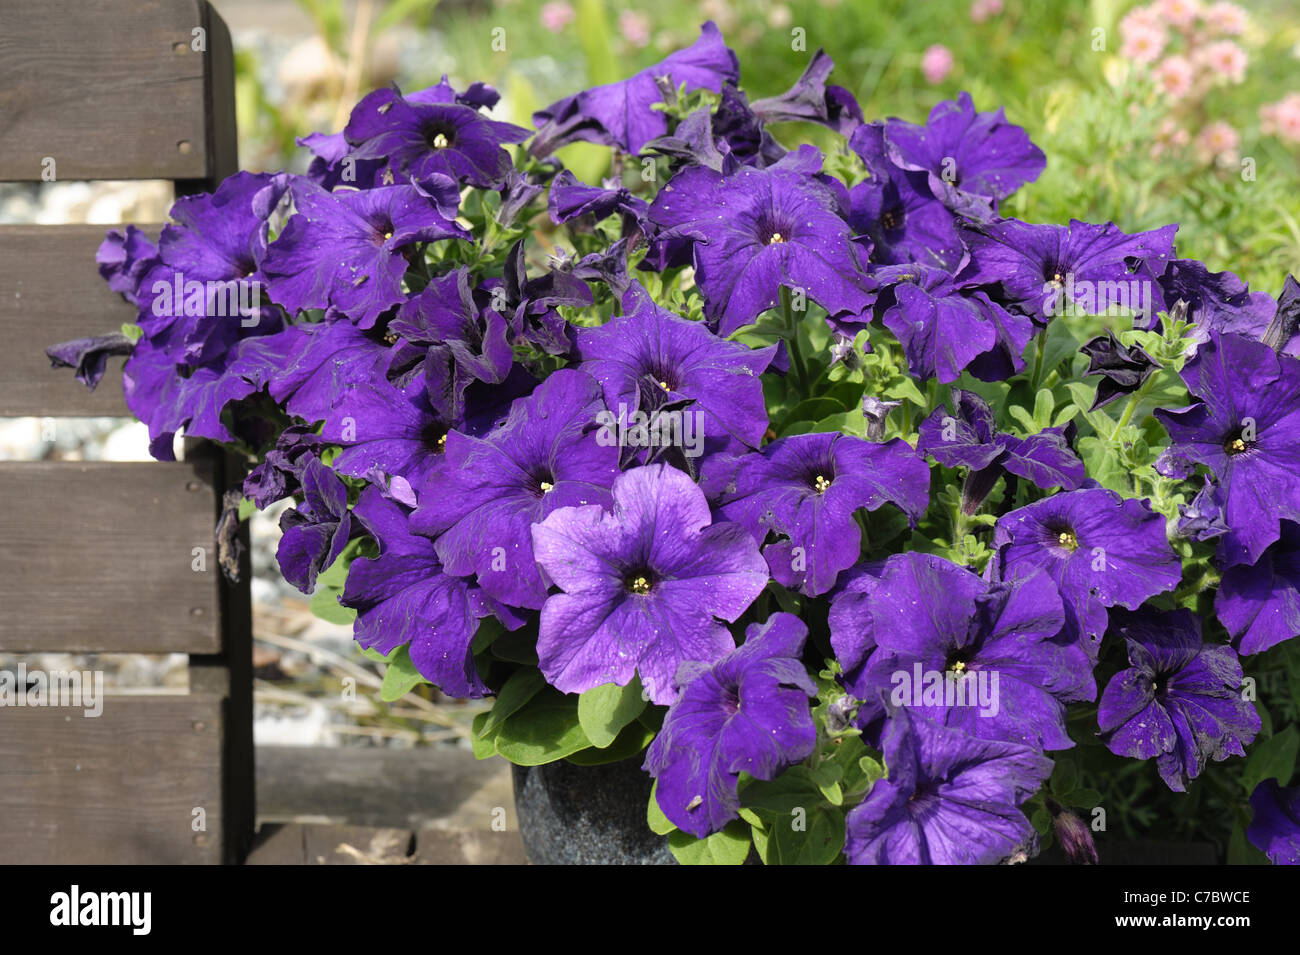 Mauve flowered Petunia grandiflora in a garden container - Stock Image